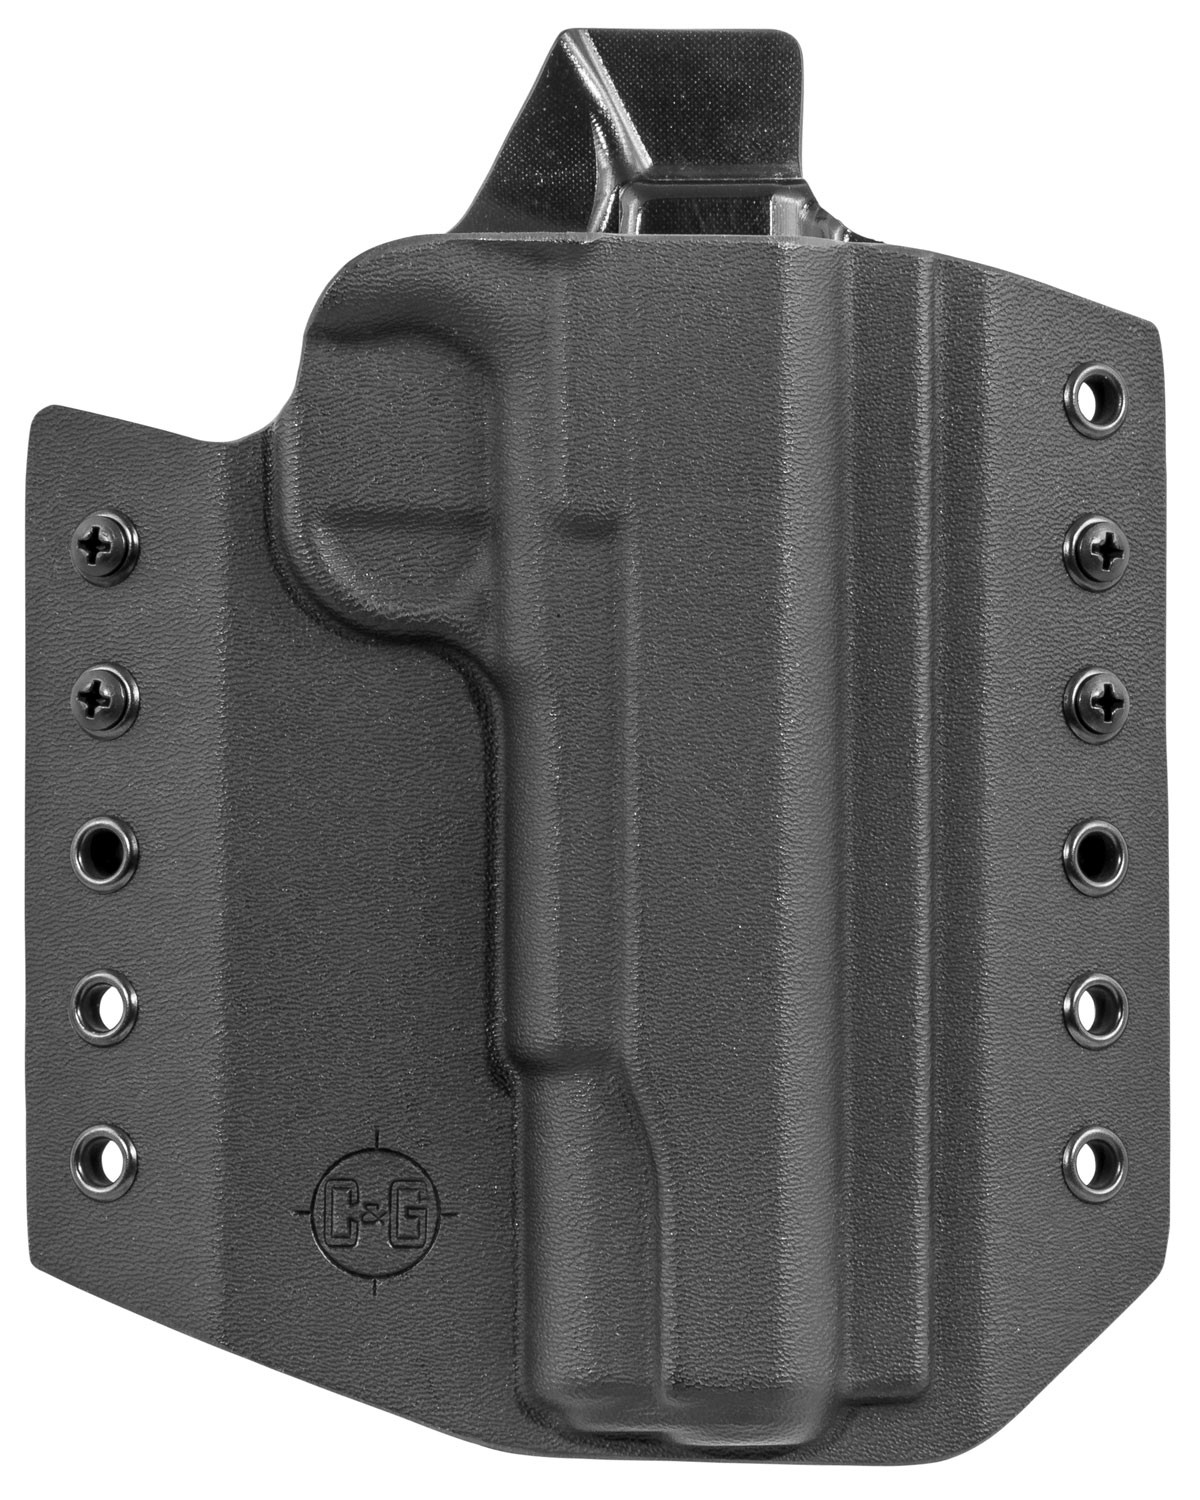 C&G HOLSTERS 021100 Covert OWB 1911 Government Kydex Black